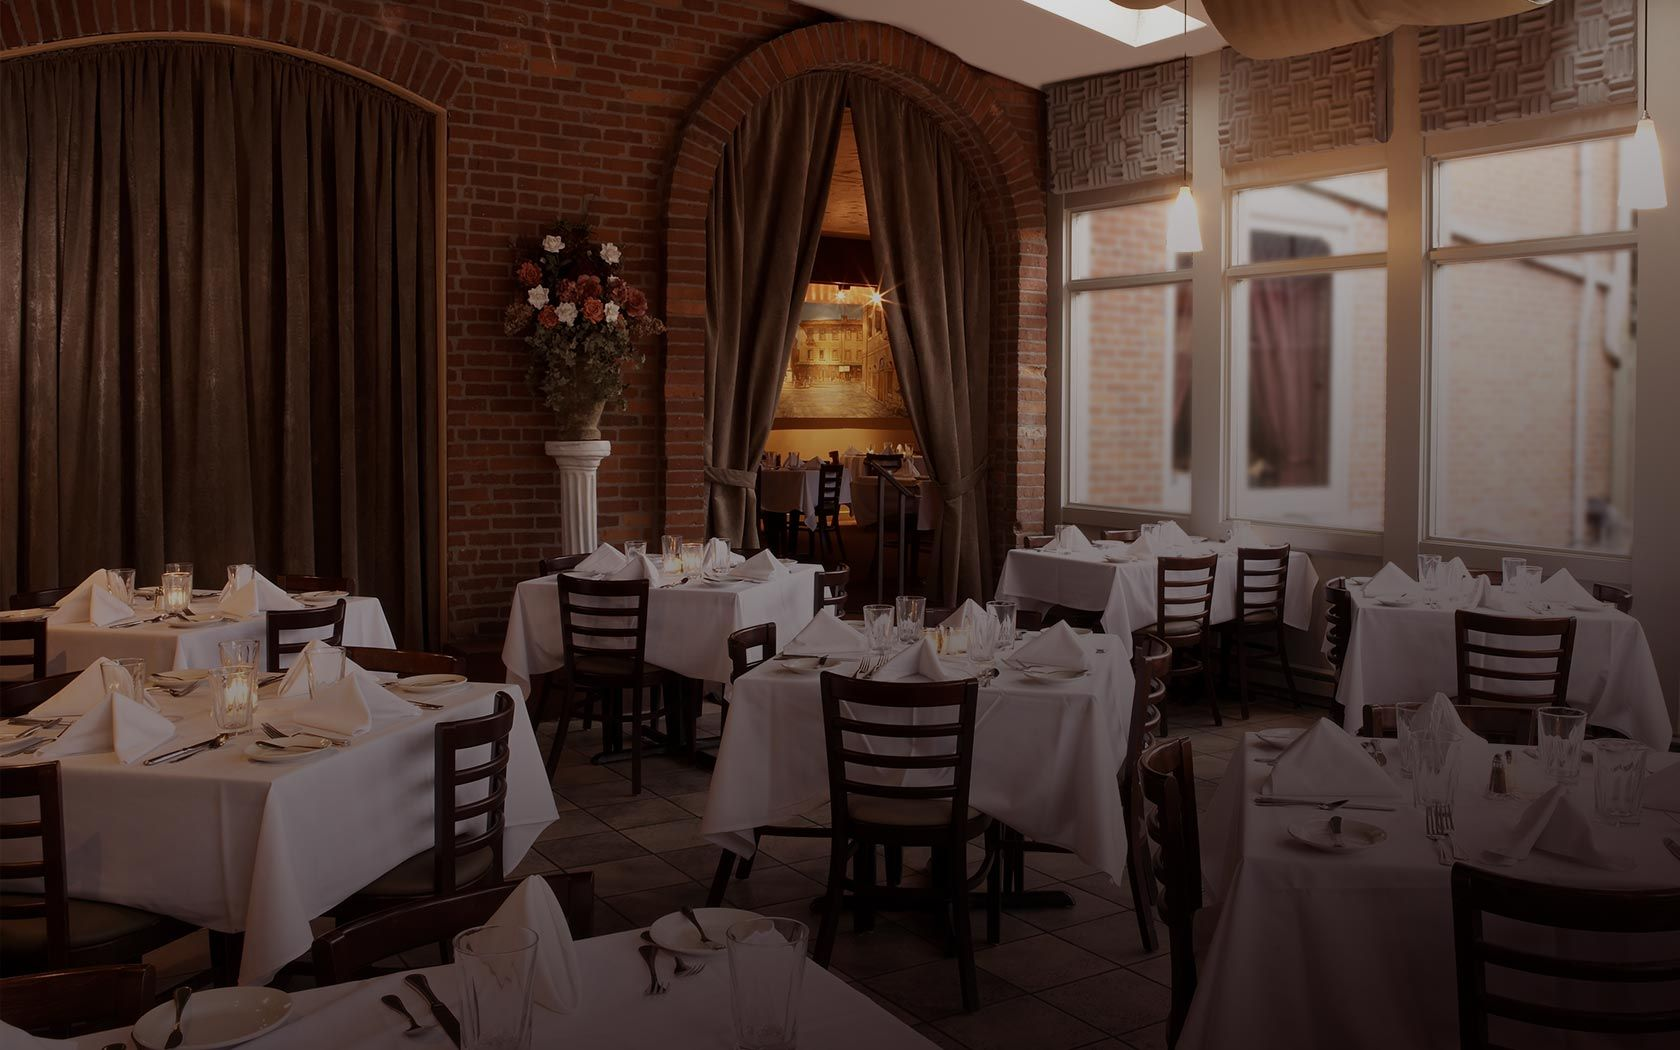 G. Michael's Bistro & Bar | A unique dining experience in Columbus serving up seasonal selections.